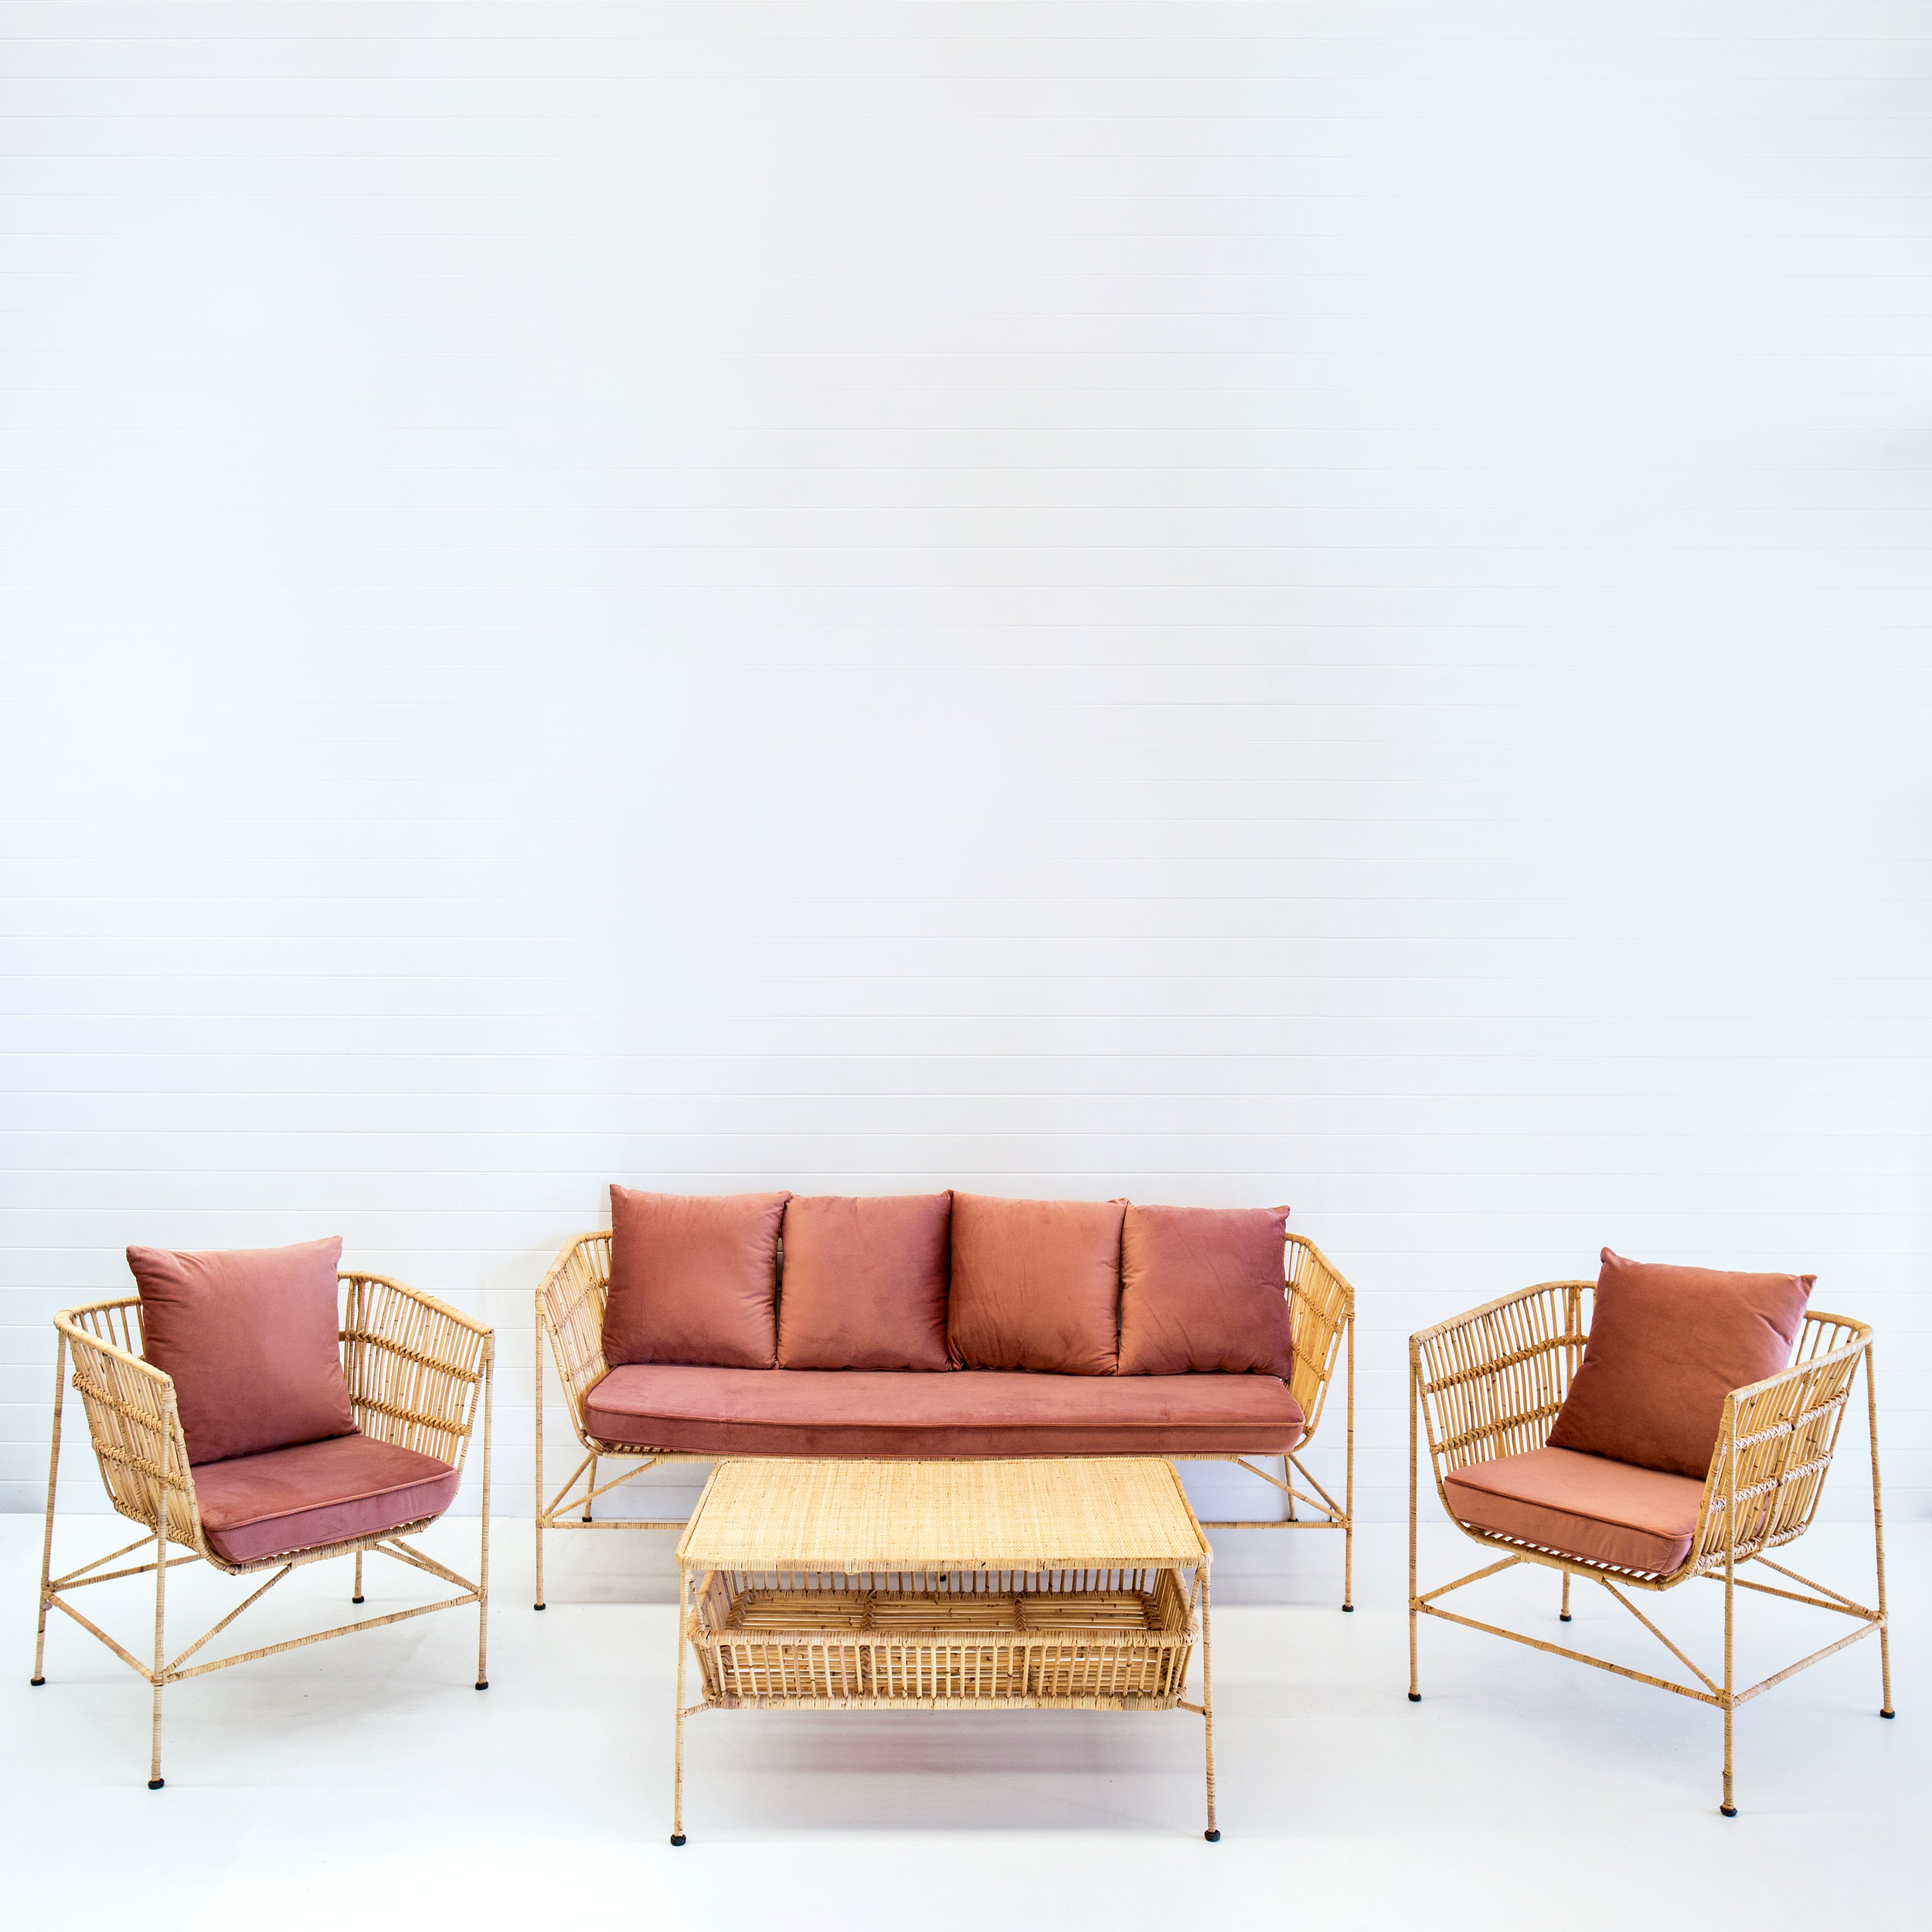 INDIE NATURAL SOFA PACKAGE (WITH DUSTY PINK VELVET CUSHIONS)